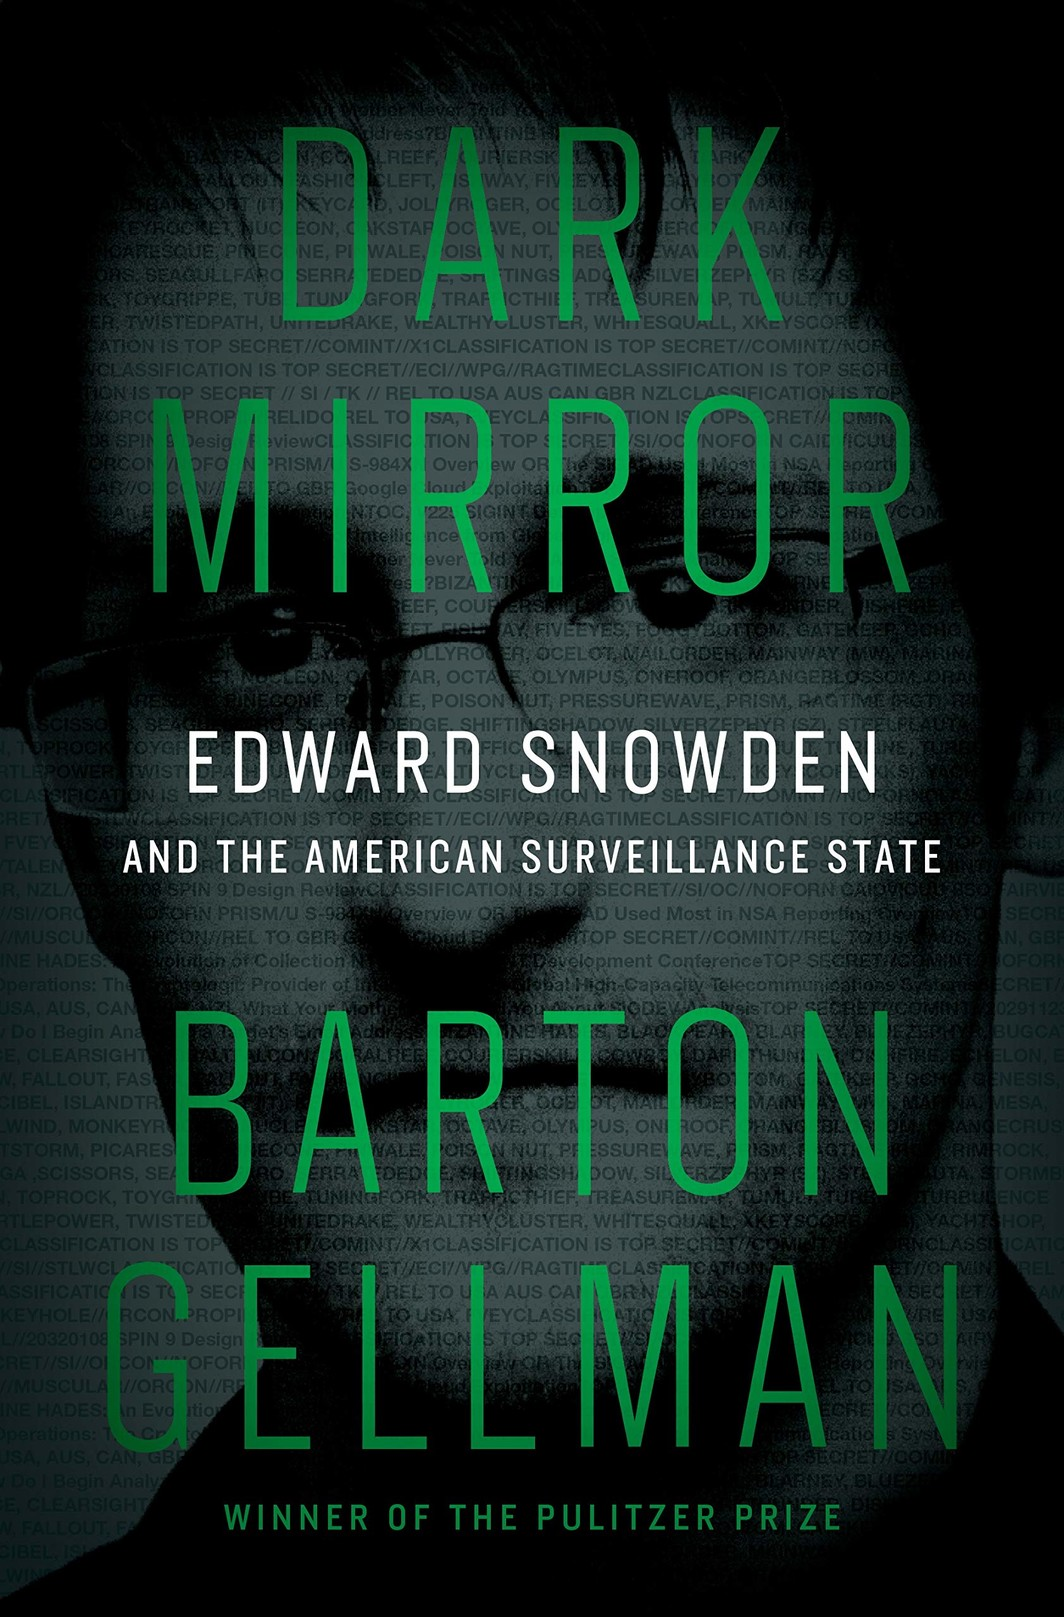 The cover of DARK MIRROR: EDWARD SNOWDEN AND THE AMERICAN SURVEILLANCE STATE